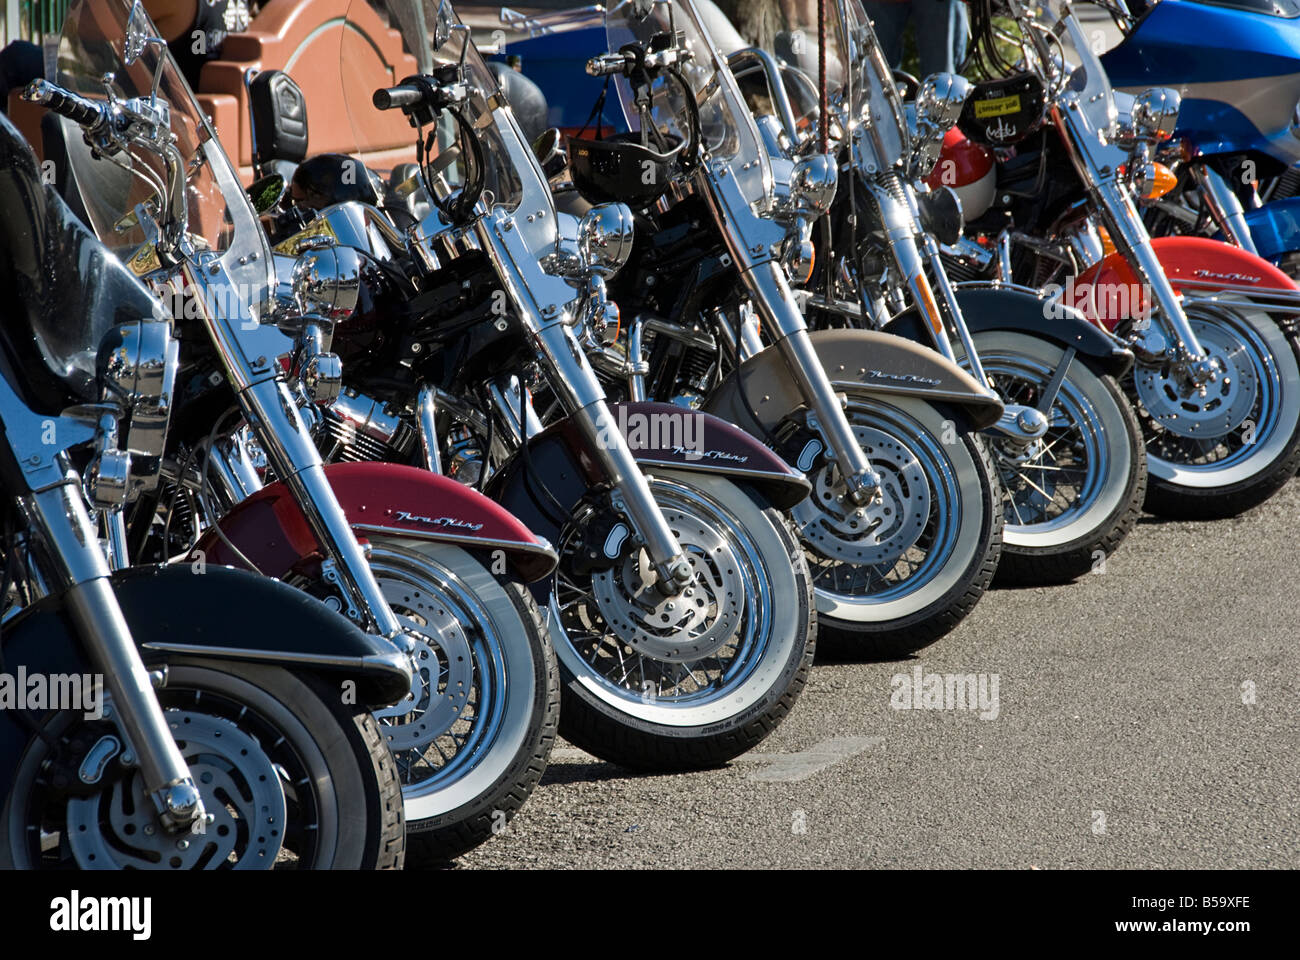 Harley Davidson: Buell Stock Photos & Buell Stock Images